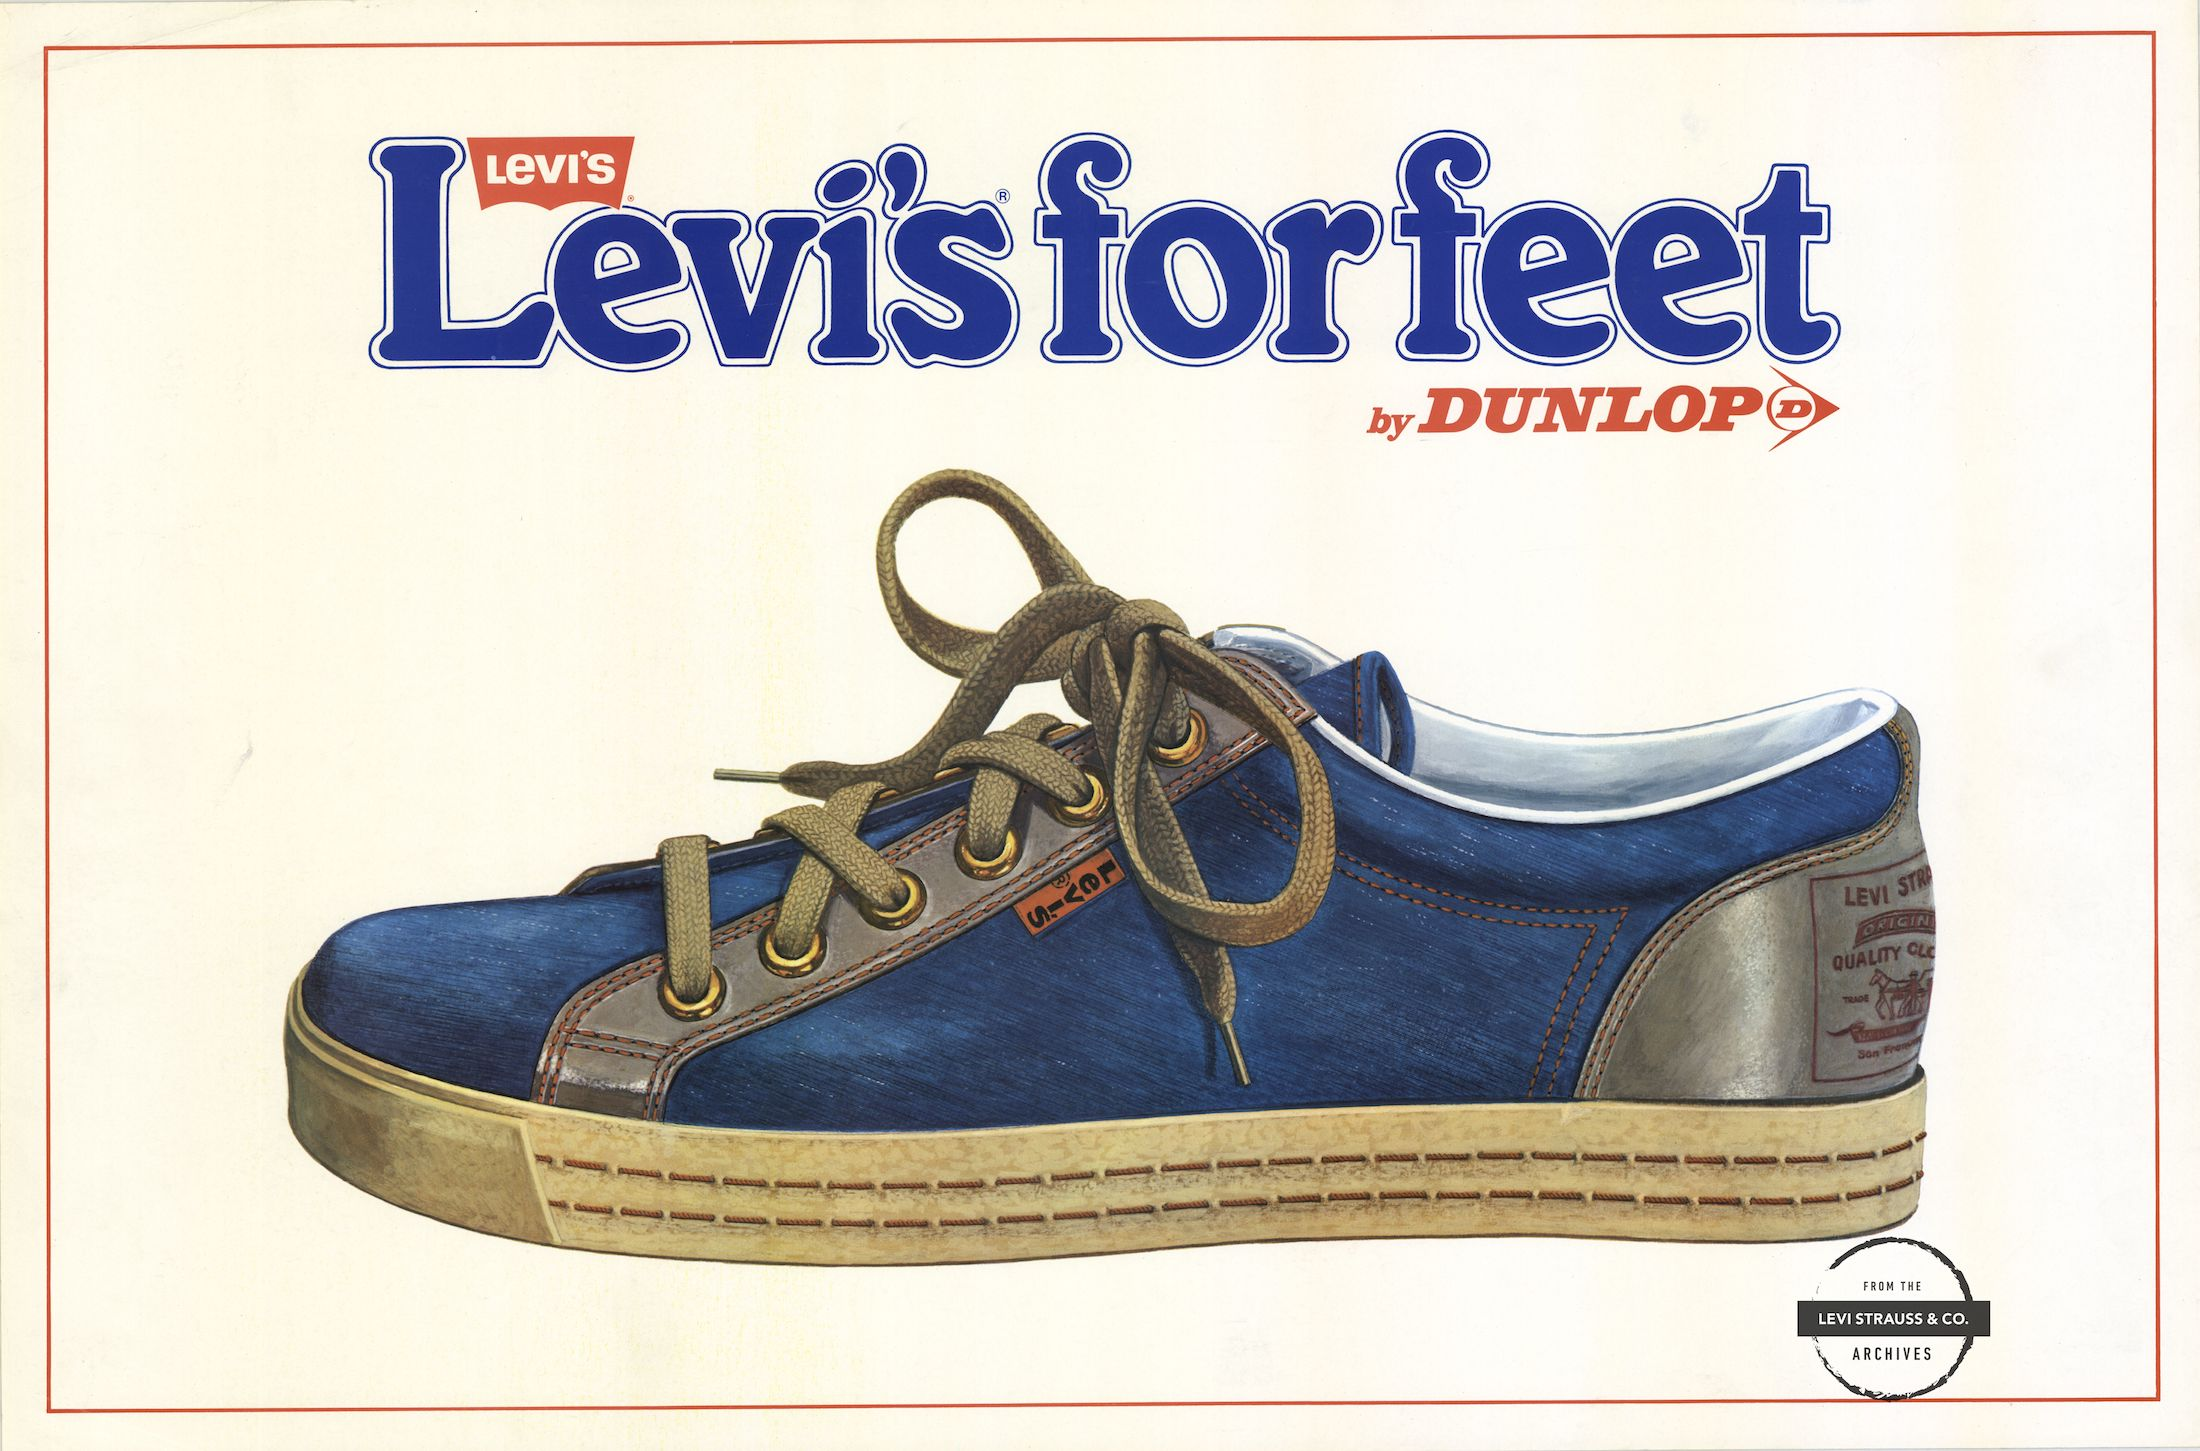 Levi's for Feet ad